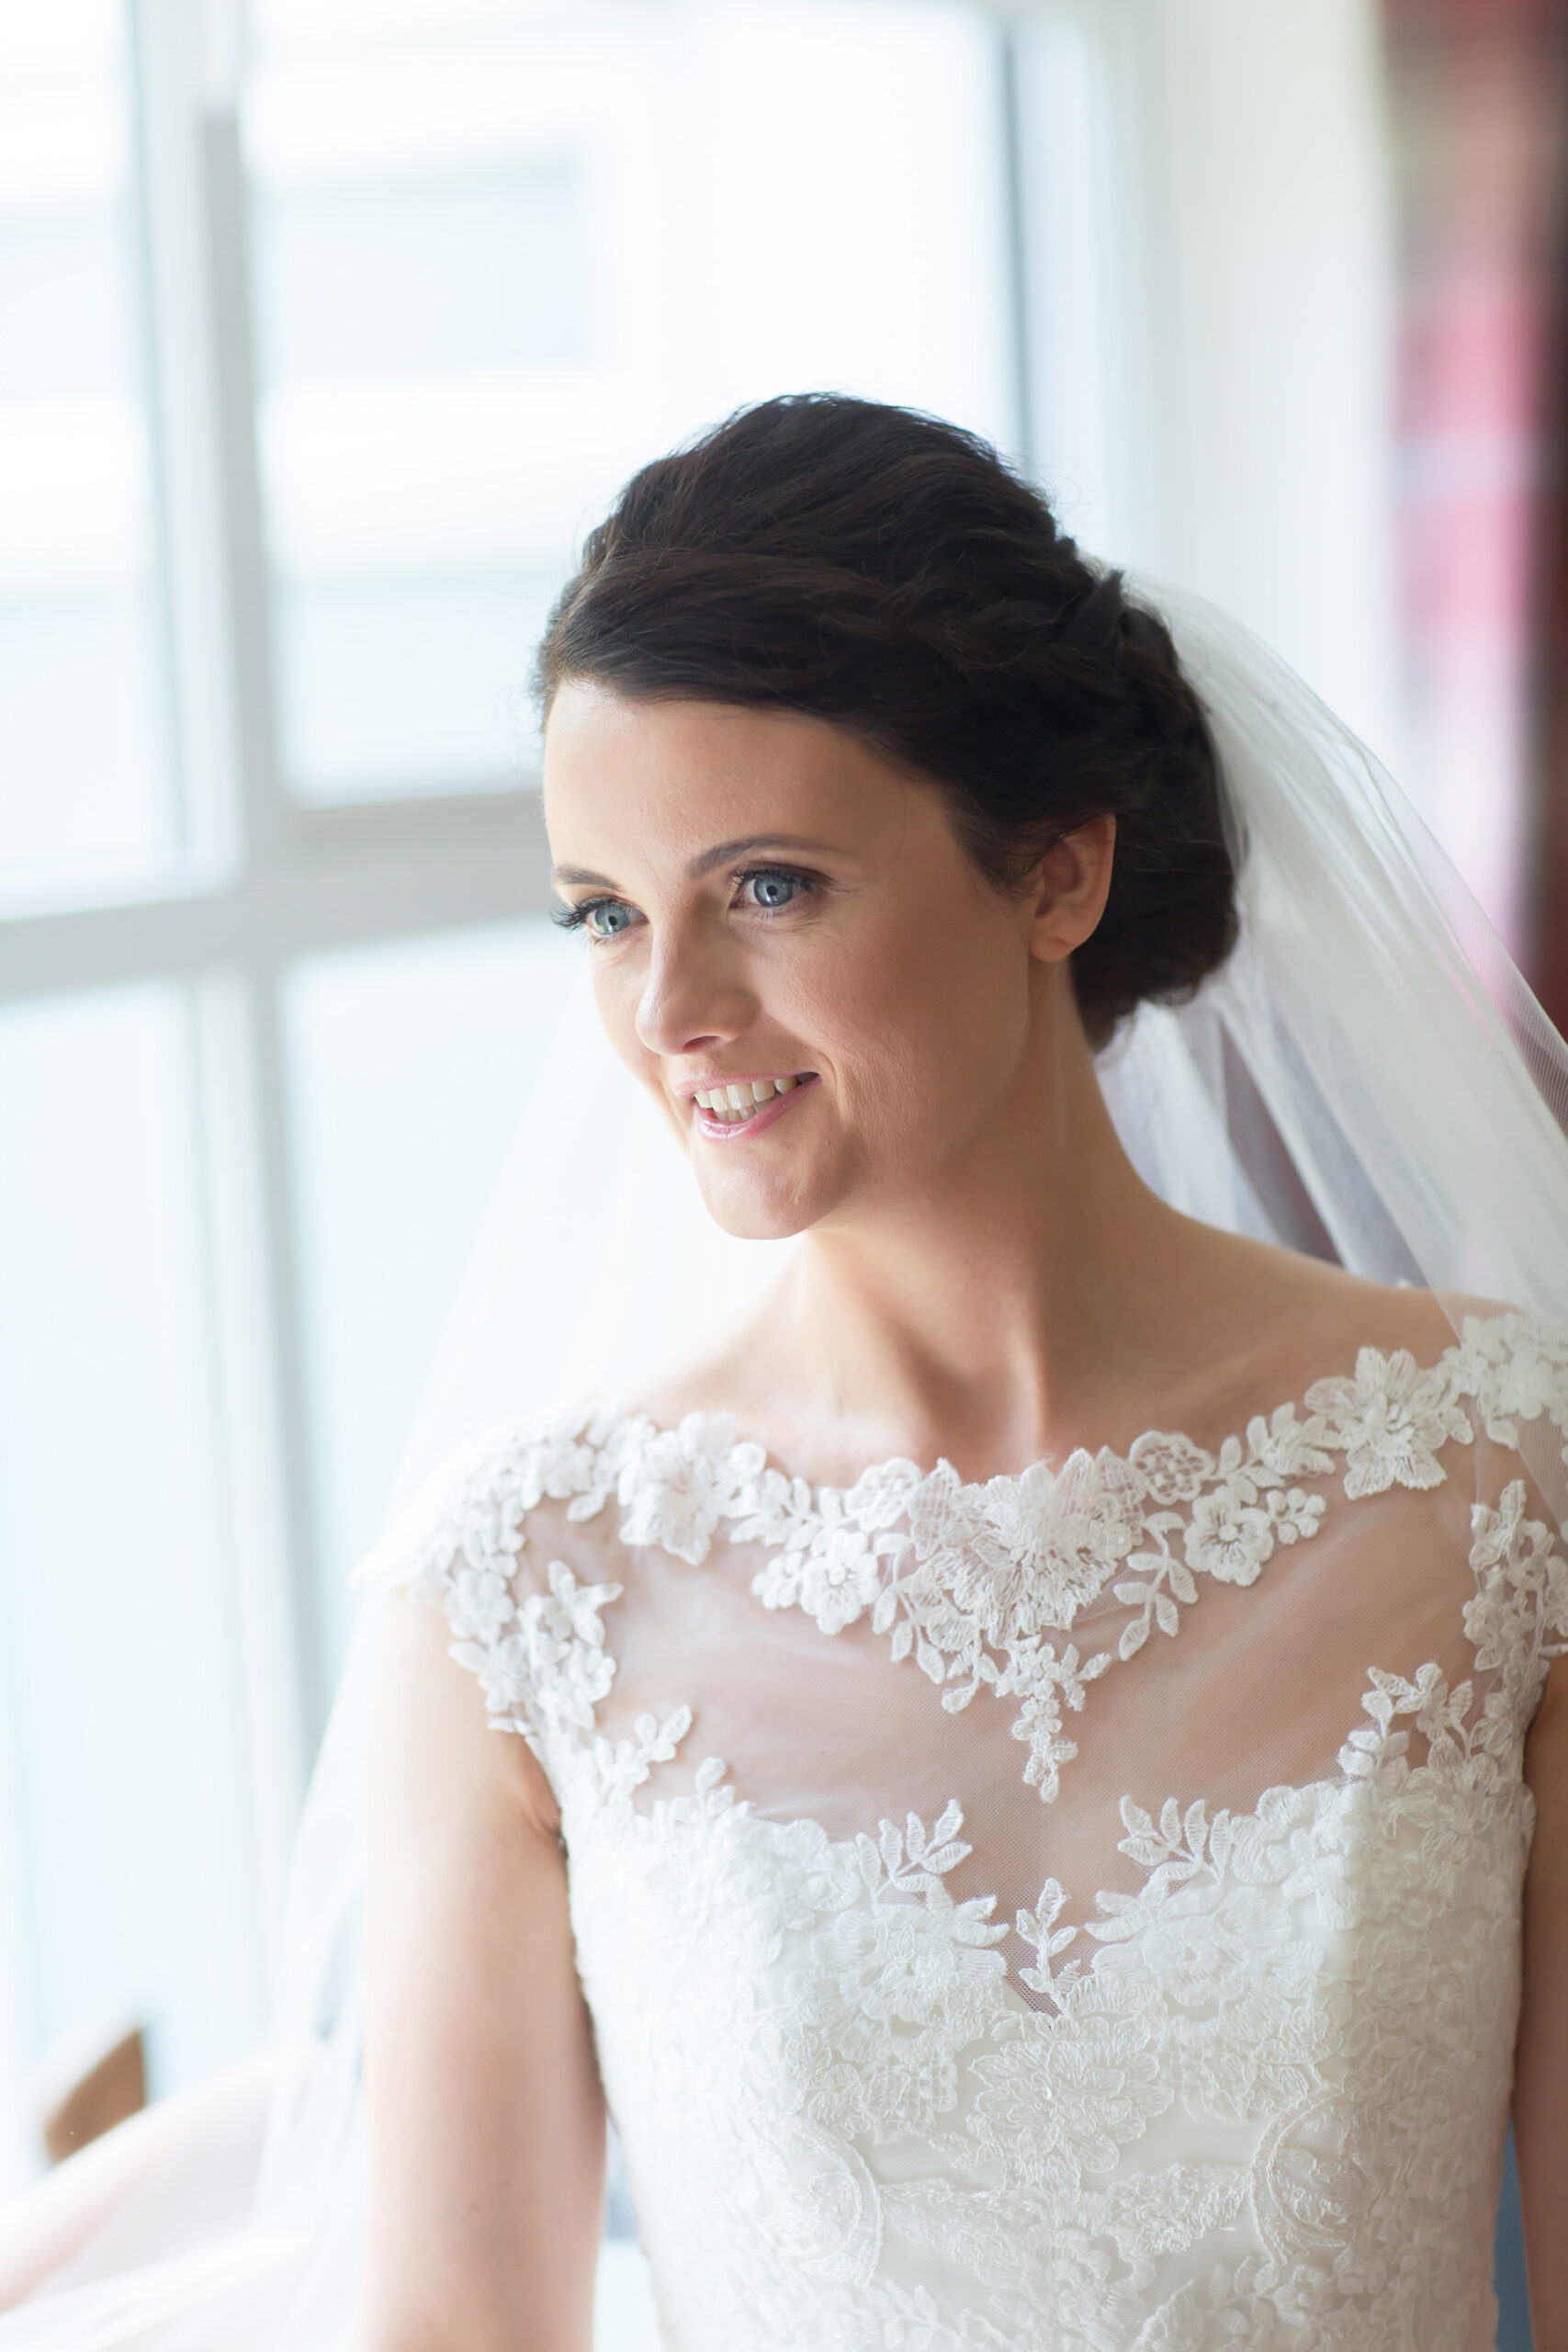 the bride looks radiant in a portrait